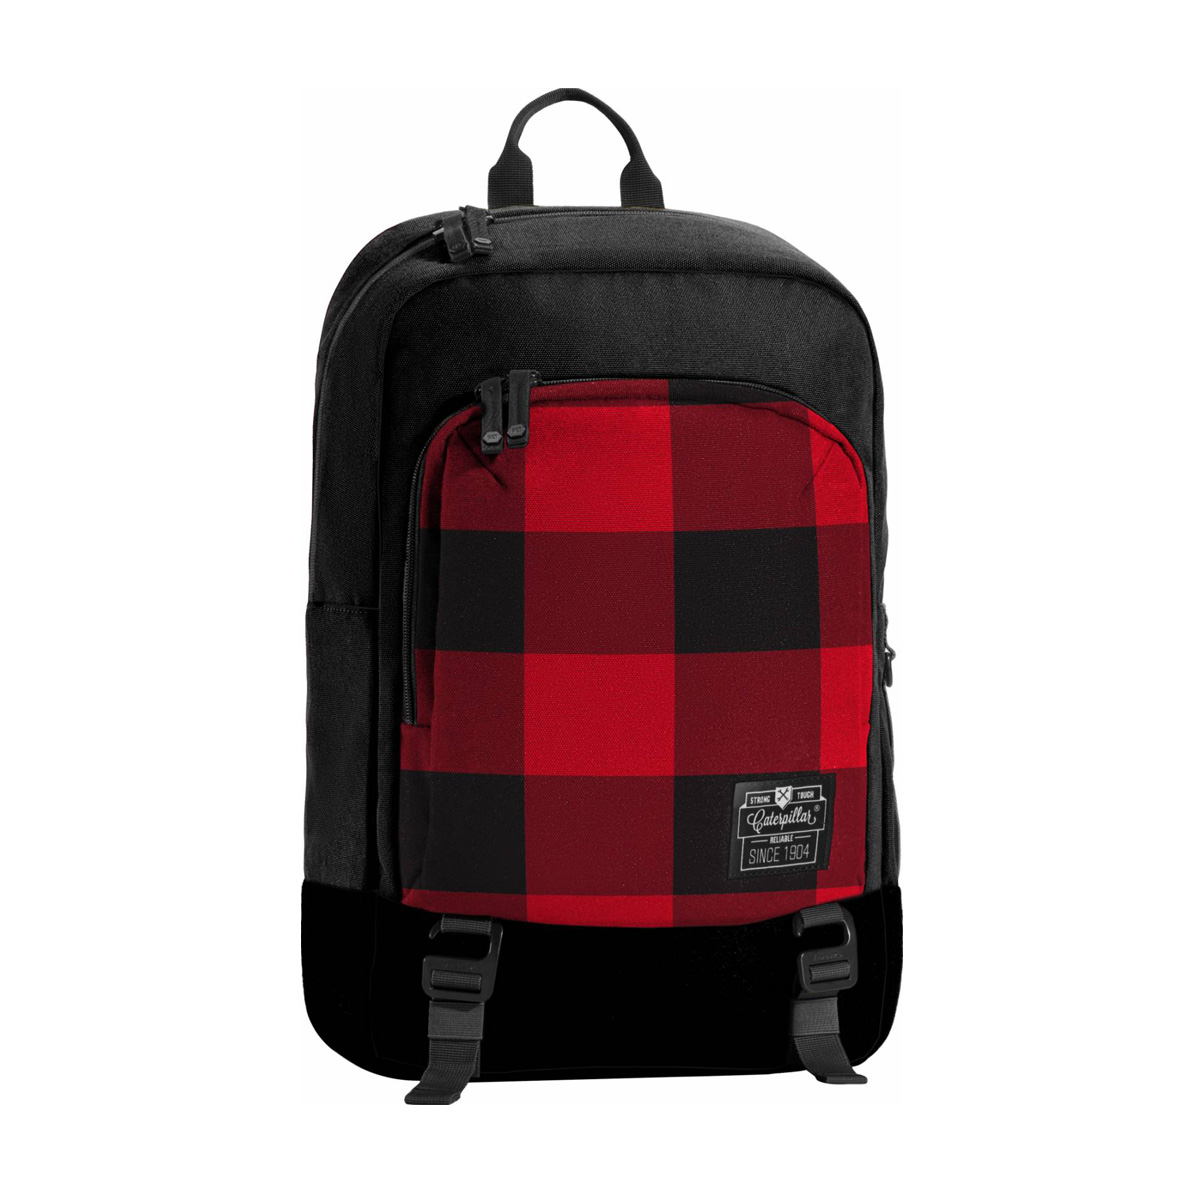 Jual Caterpillar Milling Red Checkers Bags Luggage Sarung Helm Anti Air